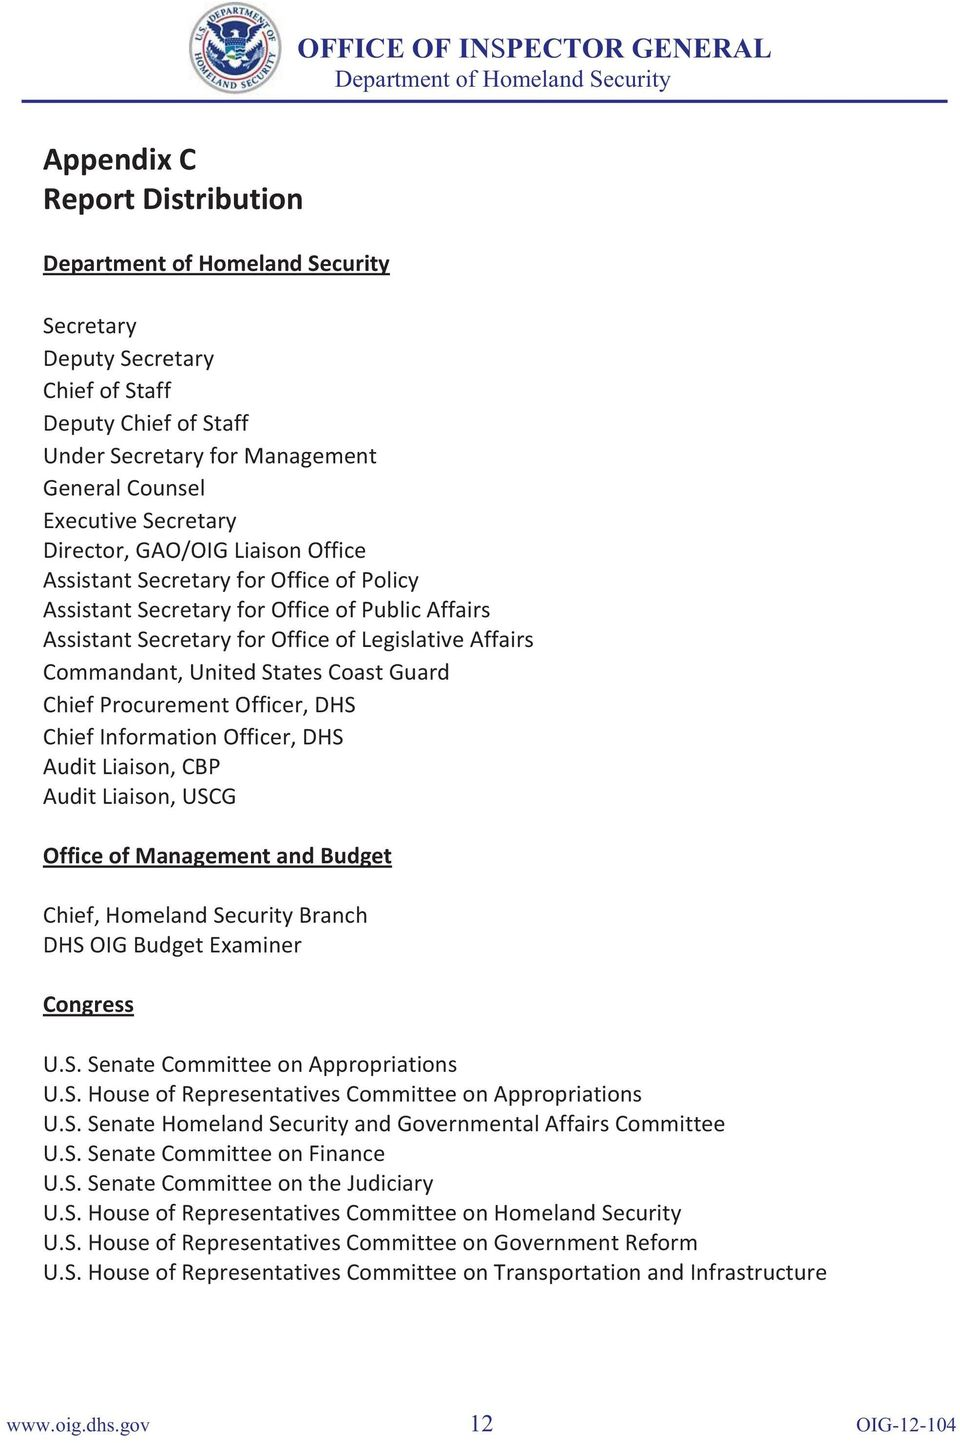 Officer, DHS Chief Information Officer, DHS Audit Liaison, CBP Audit Liaison, USCG Office of Management and Budget Chief, Homeland Security Branch DHS OIG Budget Examiner Congress U.S. Senate Committee on Appropriations U.